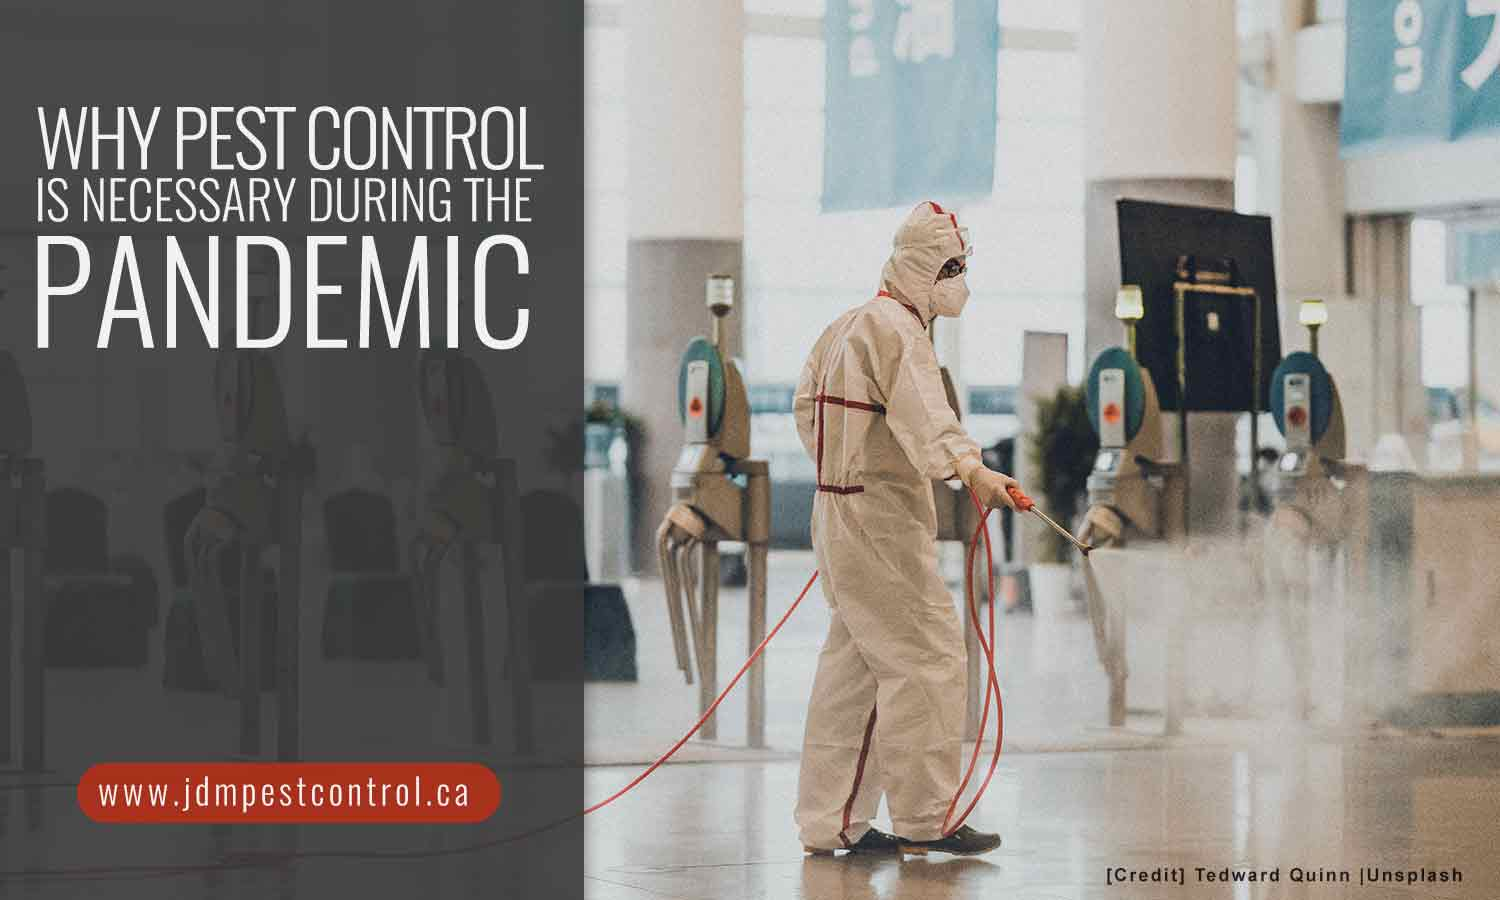 Why Pest Control Is Necessary During the Pandemic